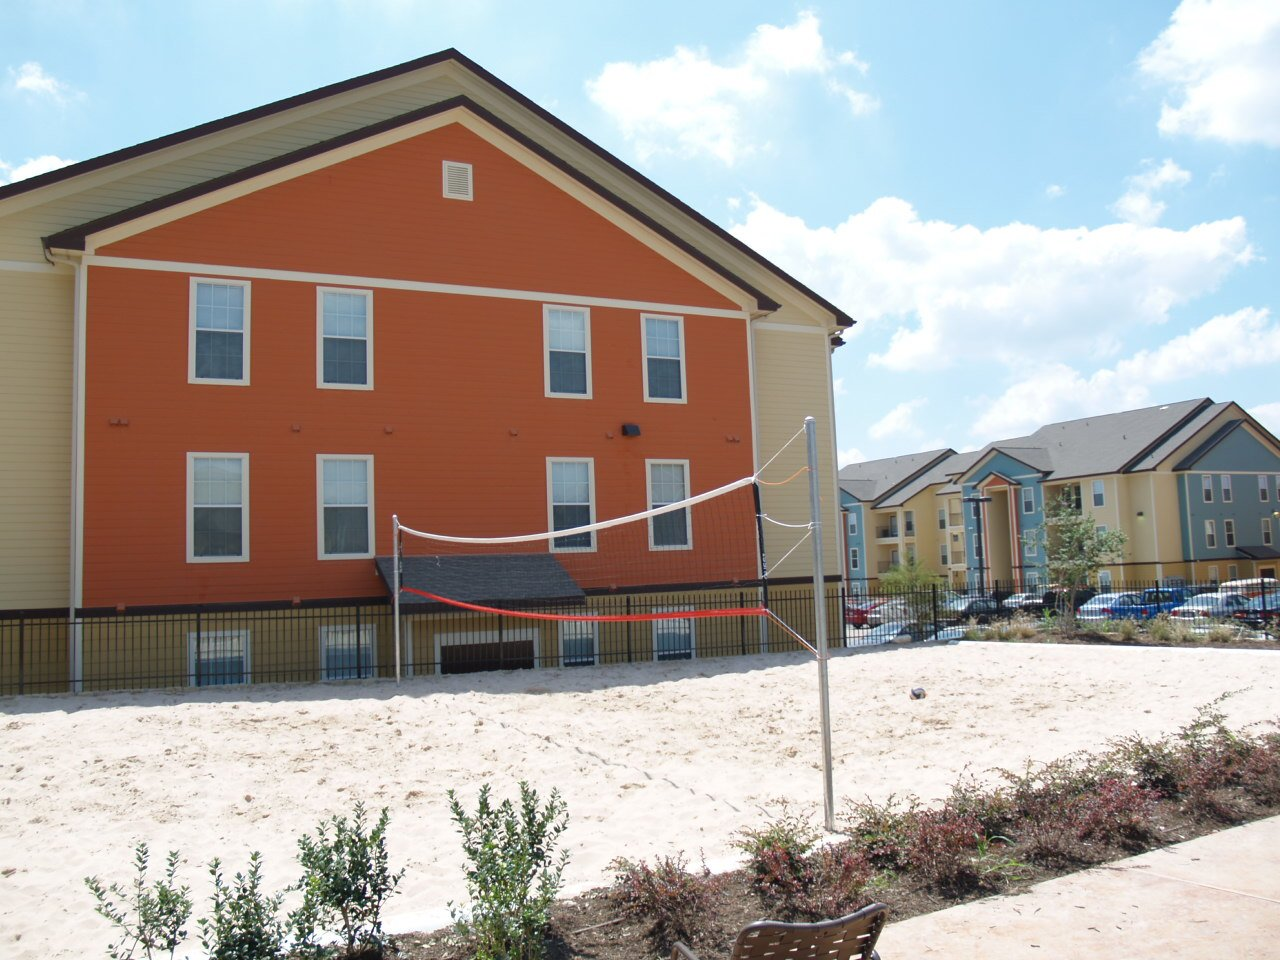 Hill Country Place Apartments image 3